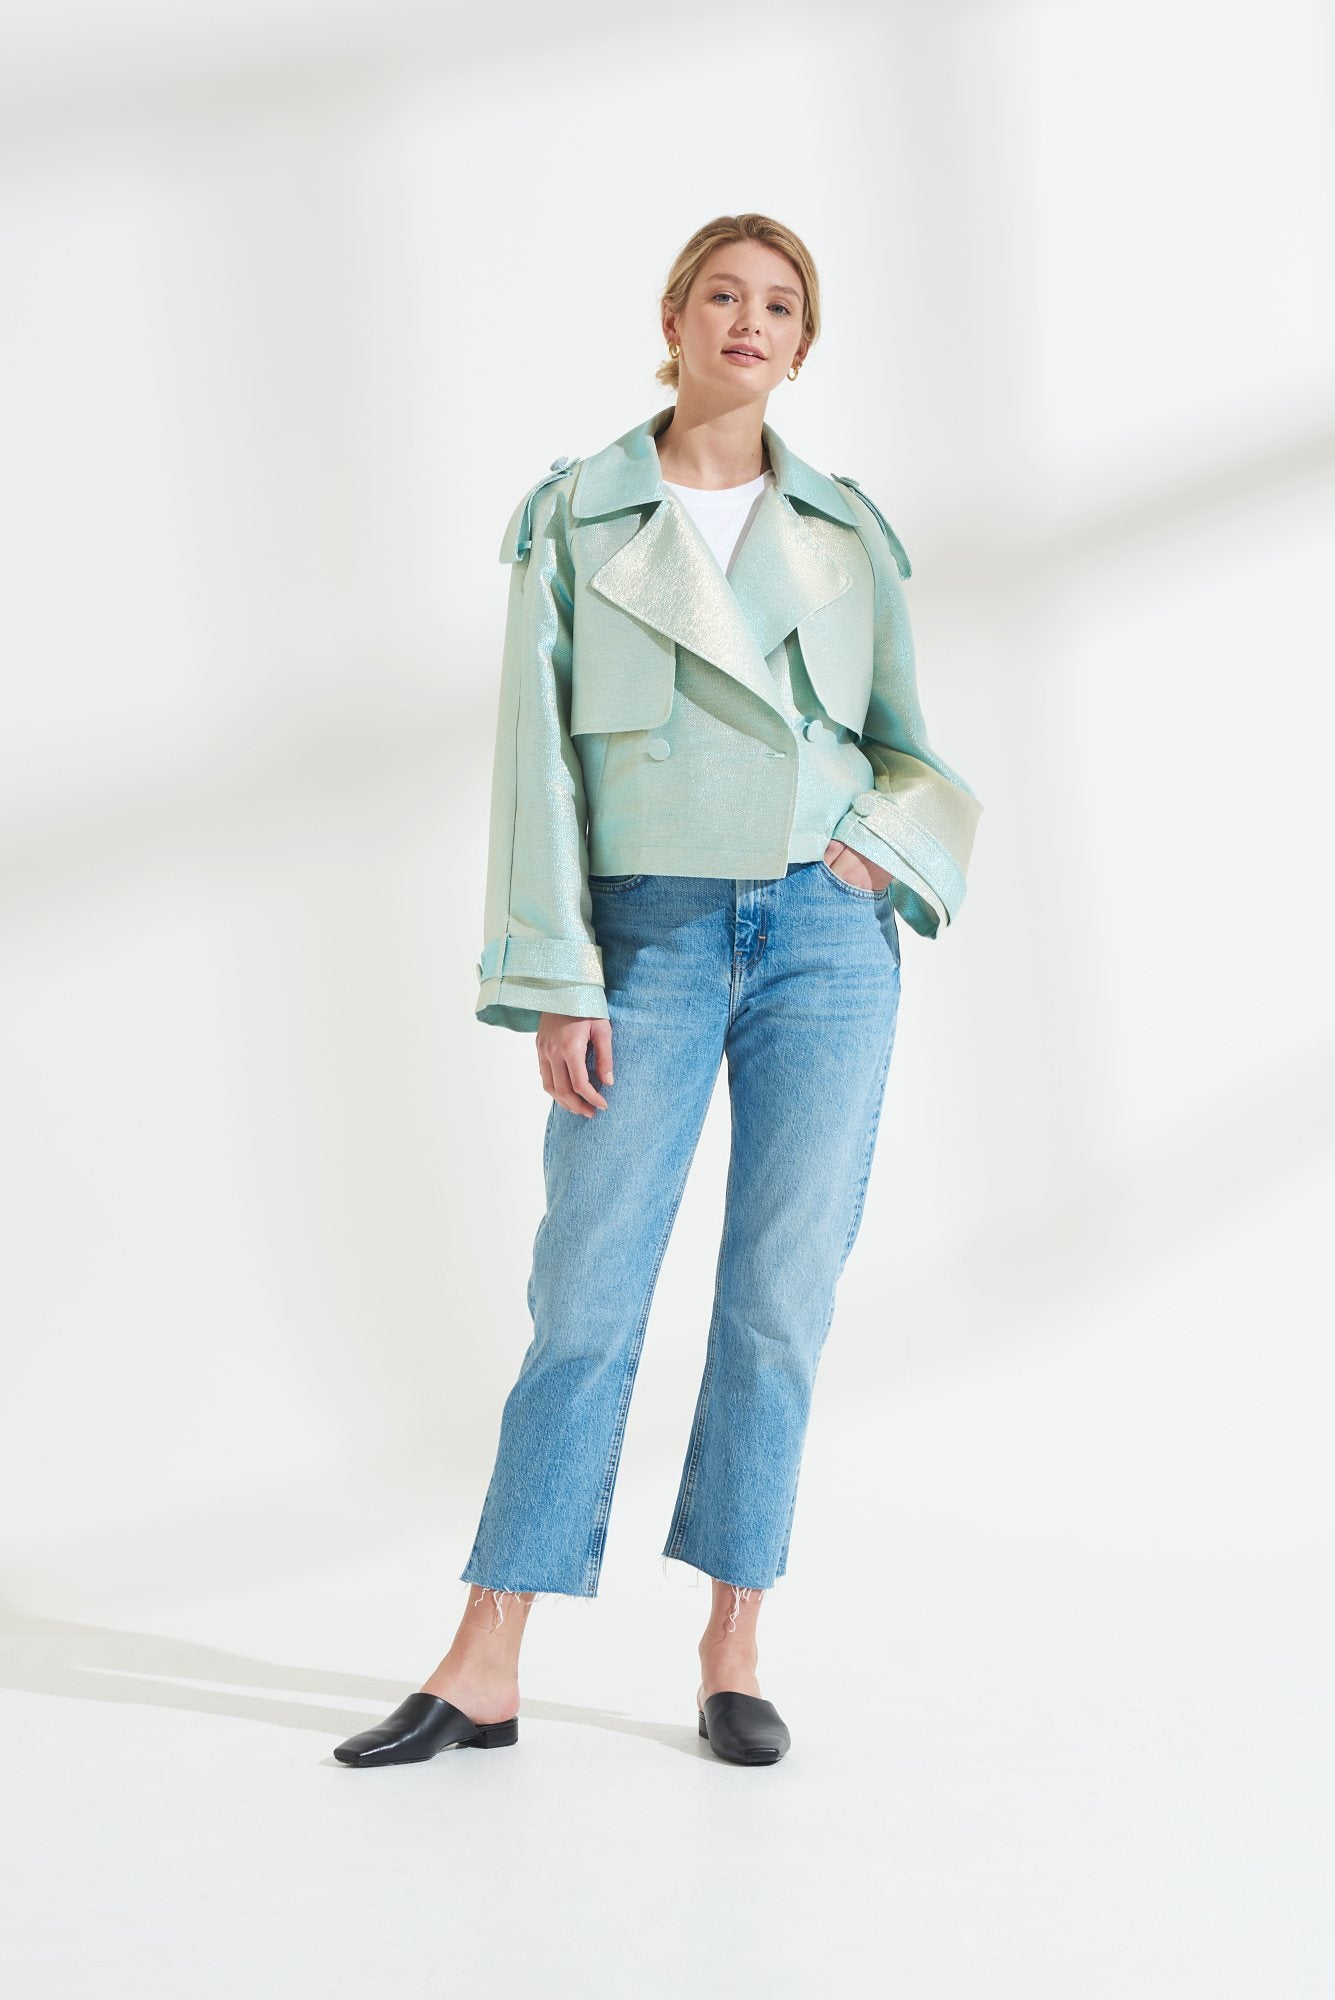 Load image into Gallery viewer, Palones Luna Metalled Crop Mint Trench